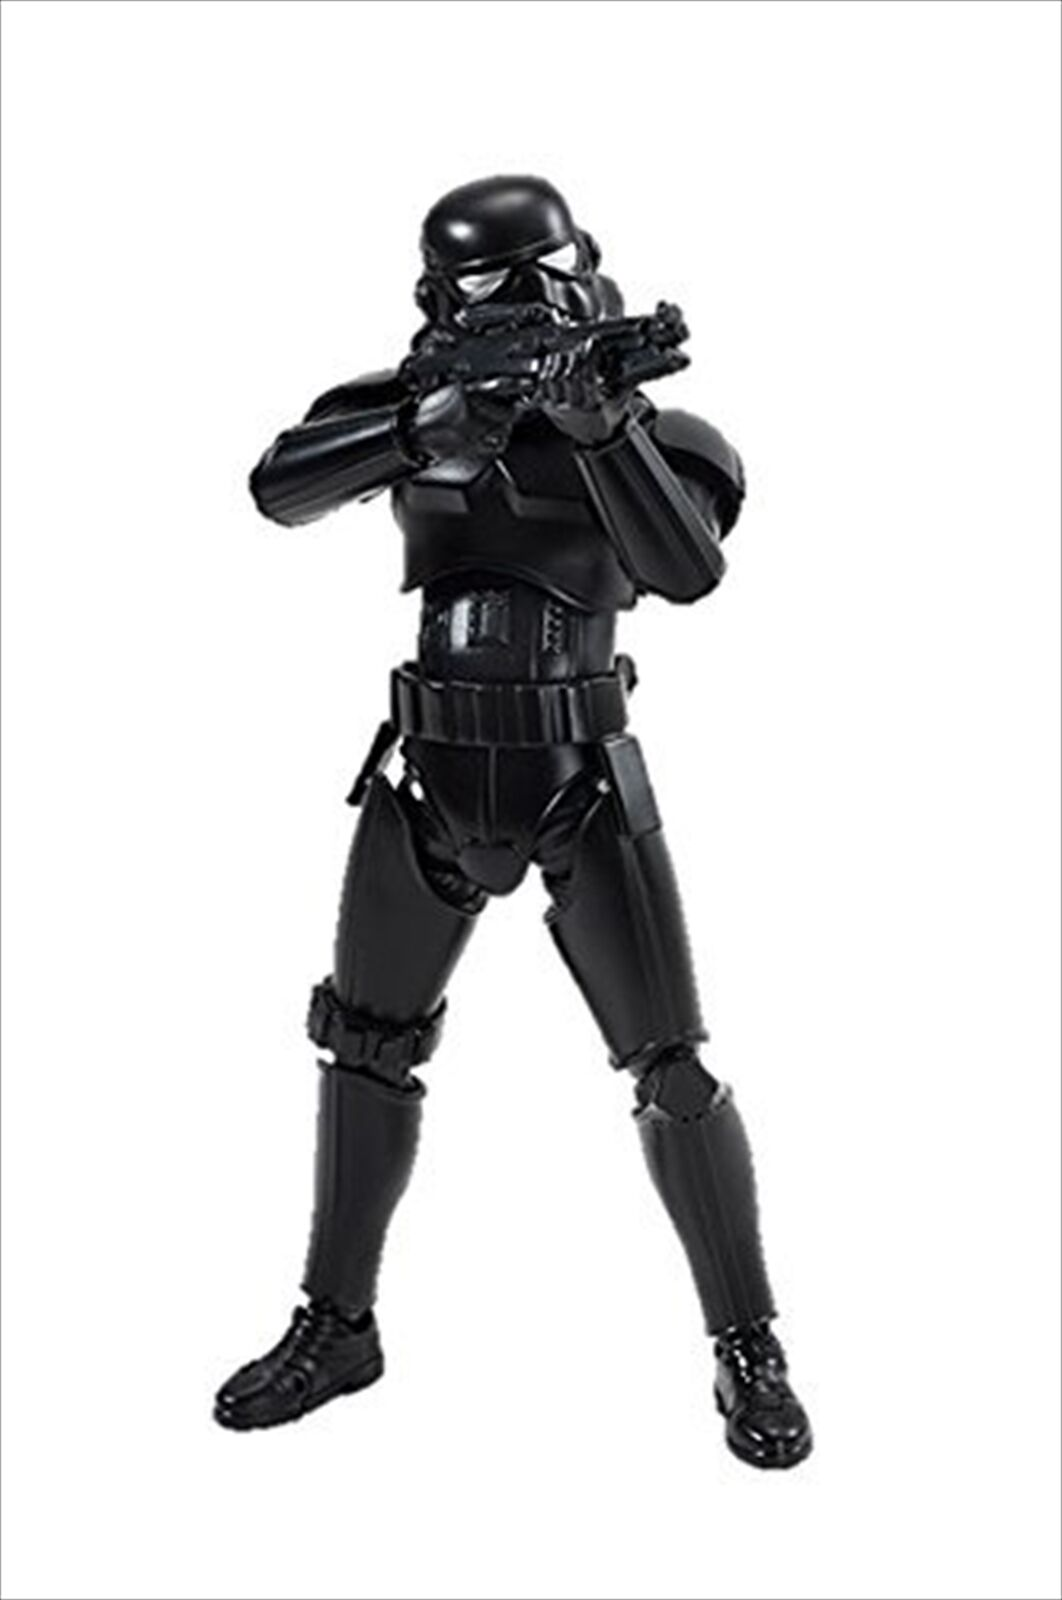 Bandai Tamashii Nataion Nataion Nataion 2015 S.H. Figuarts Shadow Trooper STAR WARS Figure dab607